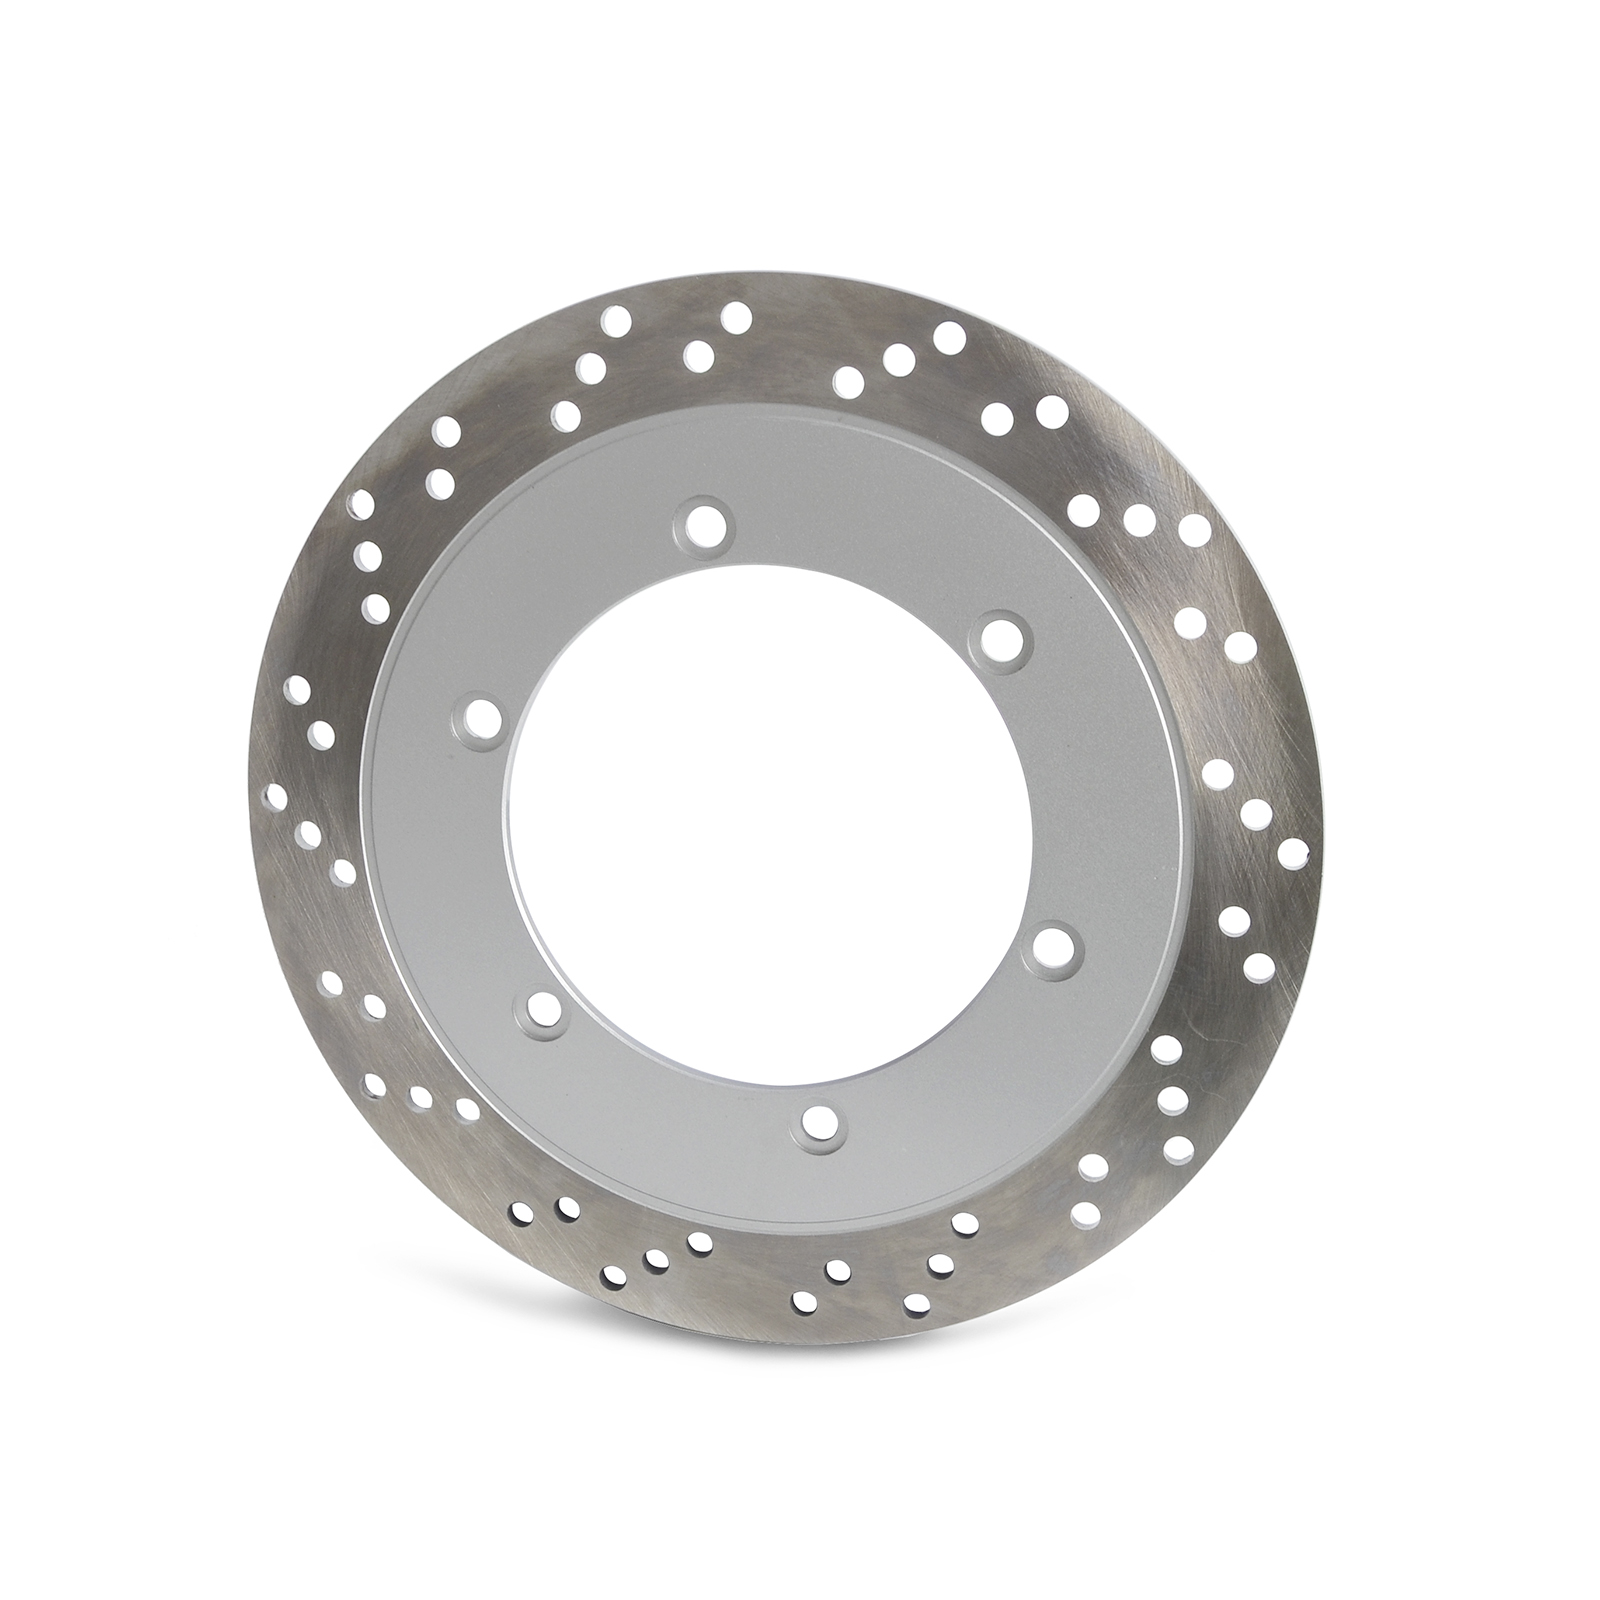 Motorcycle Front Brake Disc Rotor Fits For <font><b>Honda</b></font> VT750 DC1 DC2 DC7 DC8 <font><b>VT750S</b></font> NV 400 NC40 Shadow Slasher image